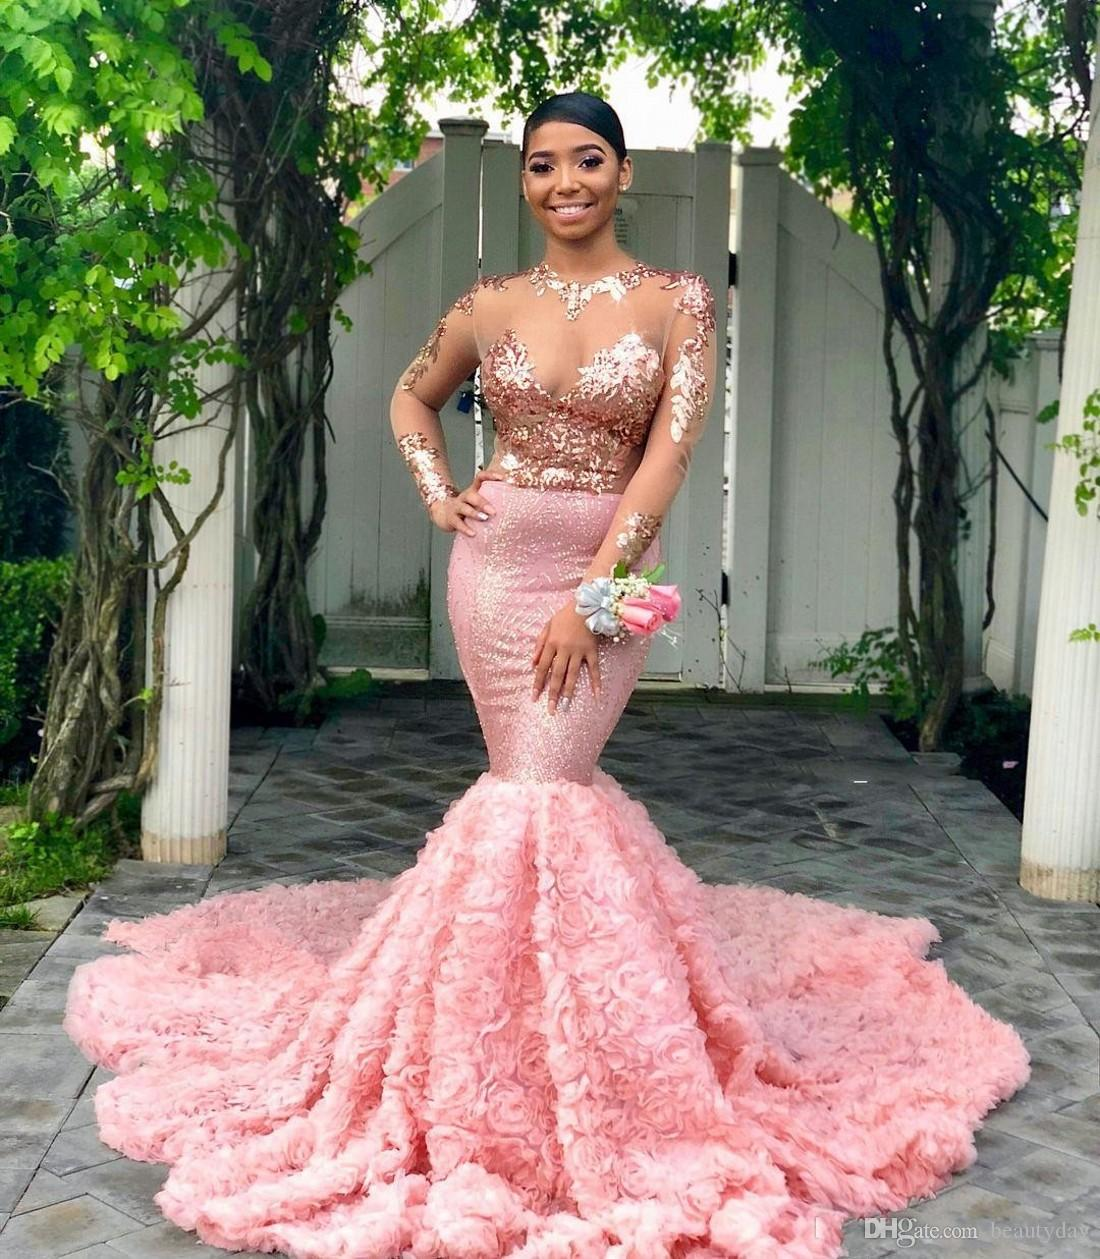 Sparkling 2019 Pink Long Sleeves Black Girls Prom Dress Mermaid Formal Pageant Holidays Wear Graduation Evening Party Gown Custom Made